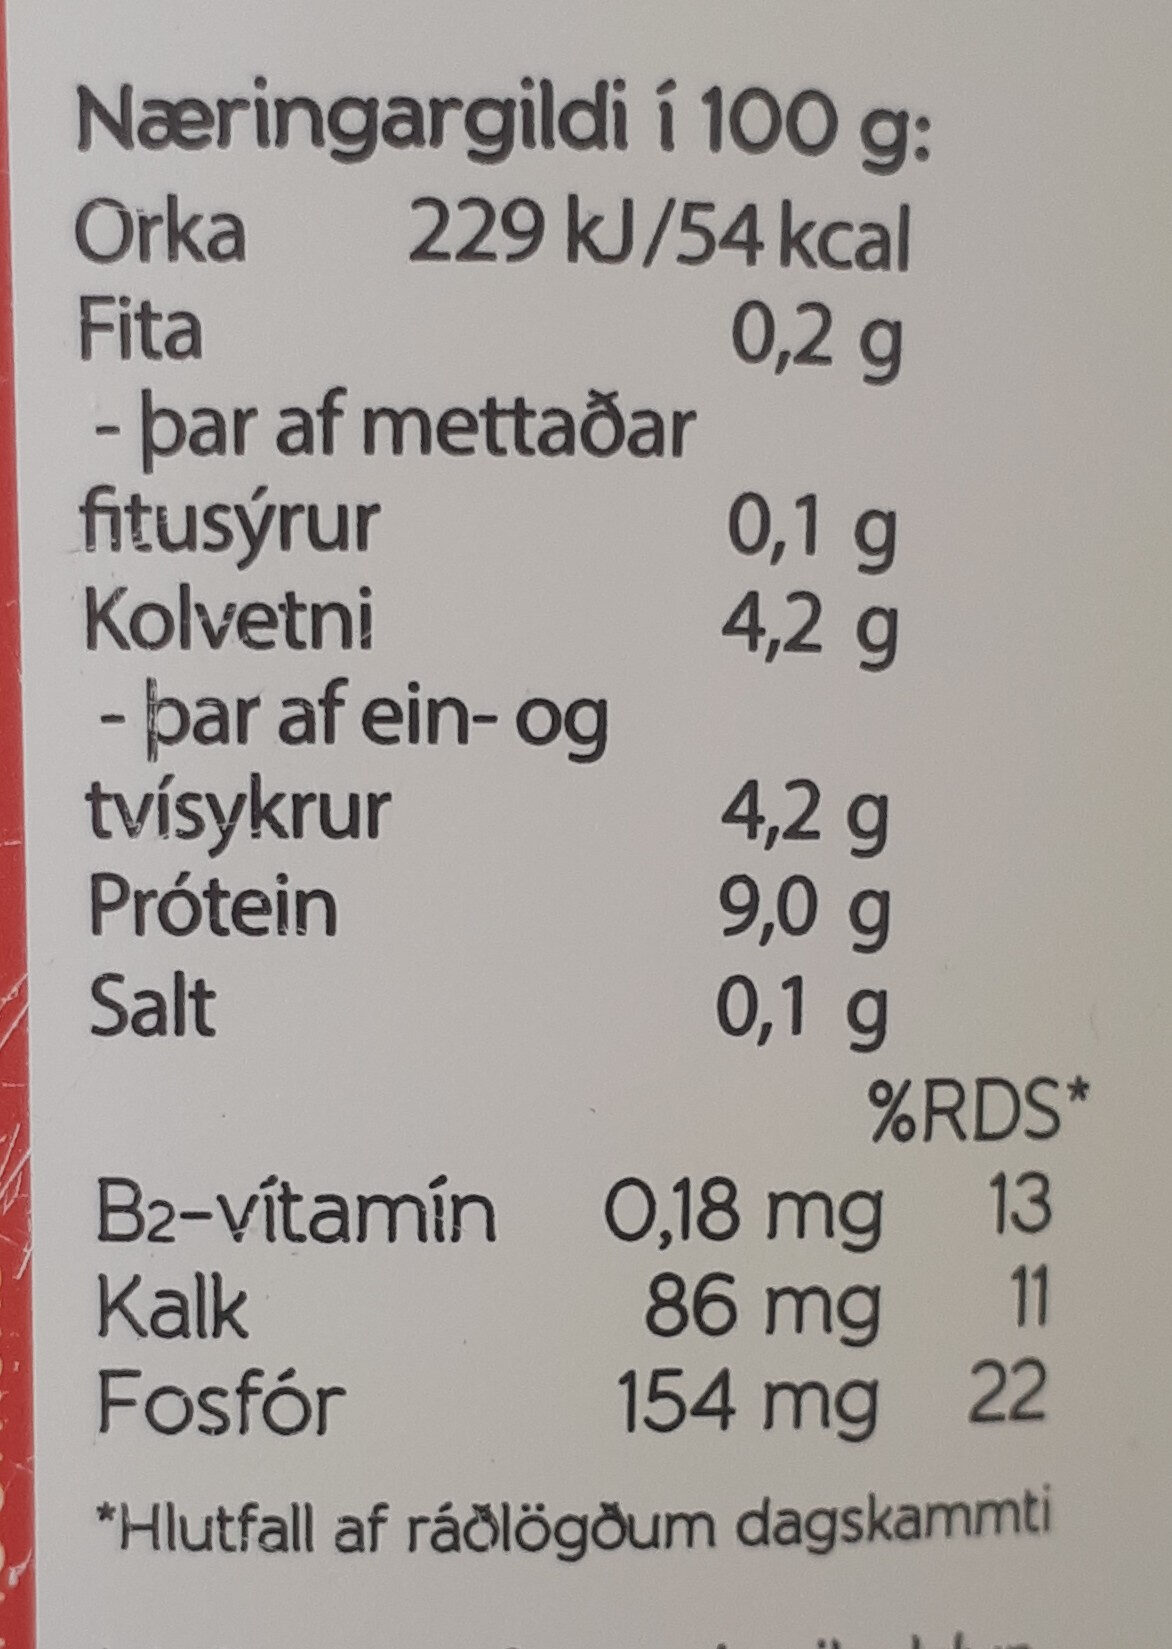 - Nutrition facts - is